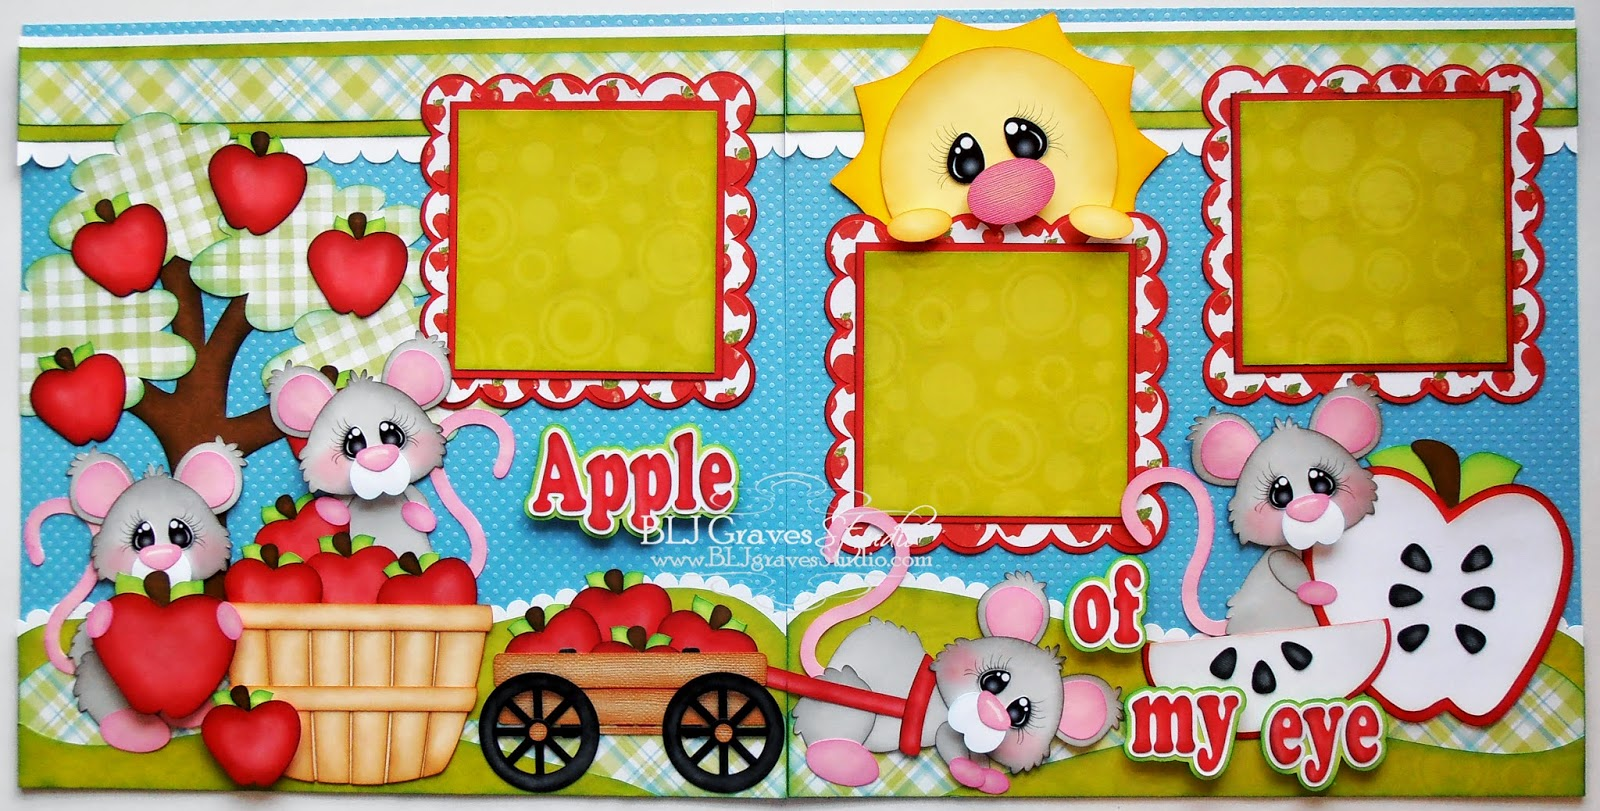 How to design scrapbook layouts - Today I Have A Double Page Scrapbook Layout Using The Adorable Mice From Little Scraps Of Heaven Designs Files Used Apple Picking Mice